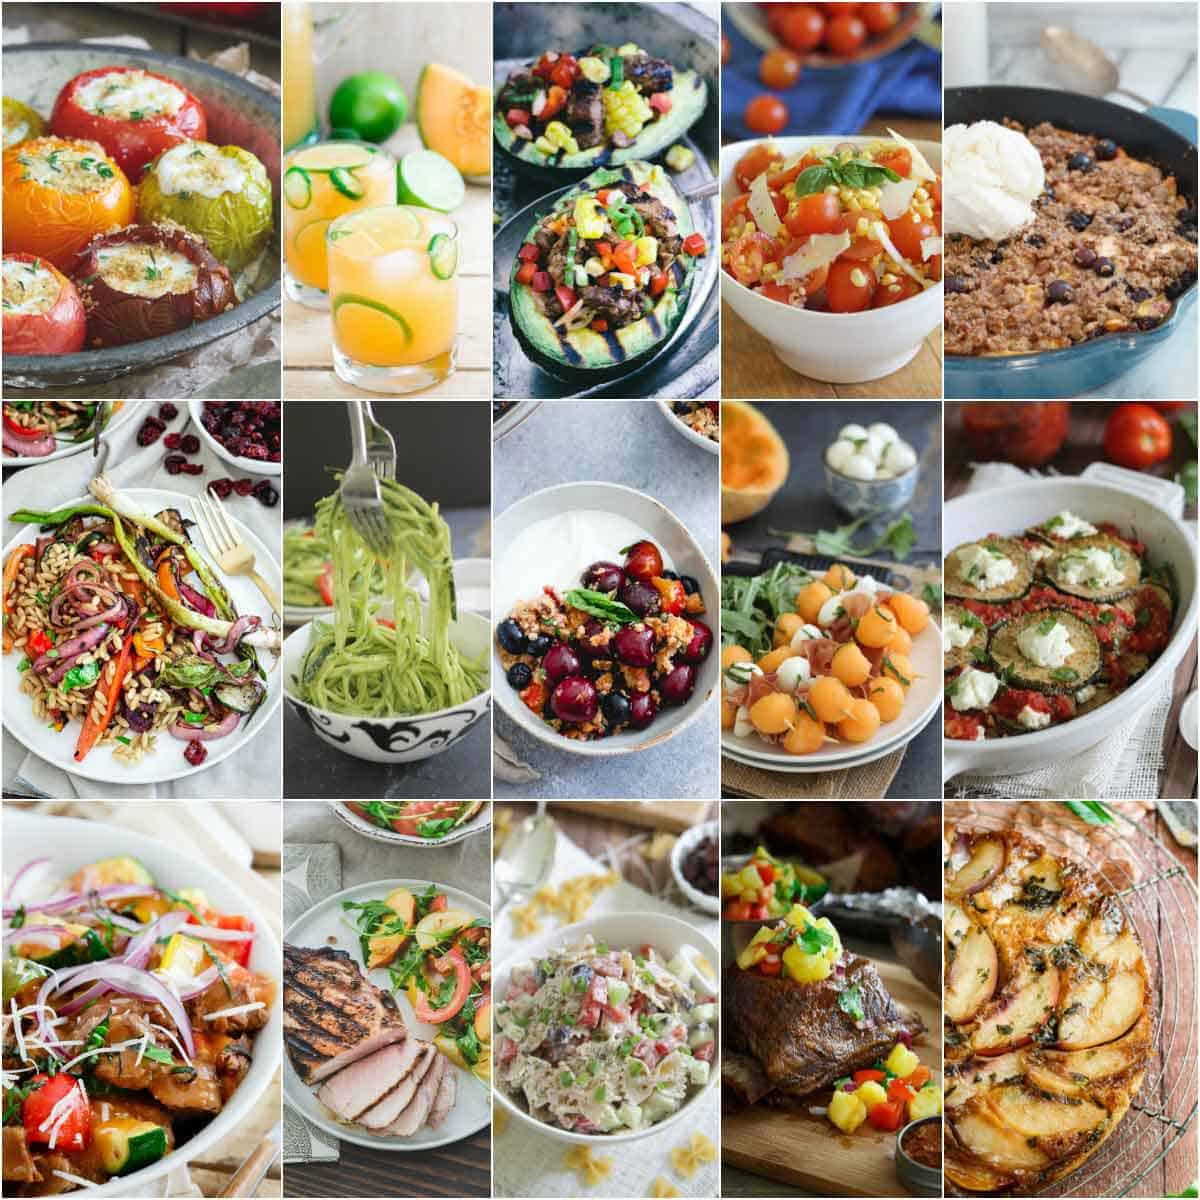 15 easy and healthy summer recipes to make all season long. From healthy appetizers, salads, drinks, main dishes and dessert, there's a summer recipe for everyone!